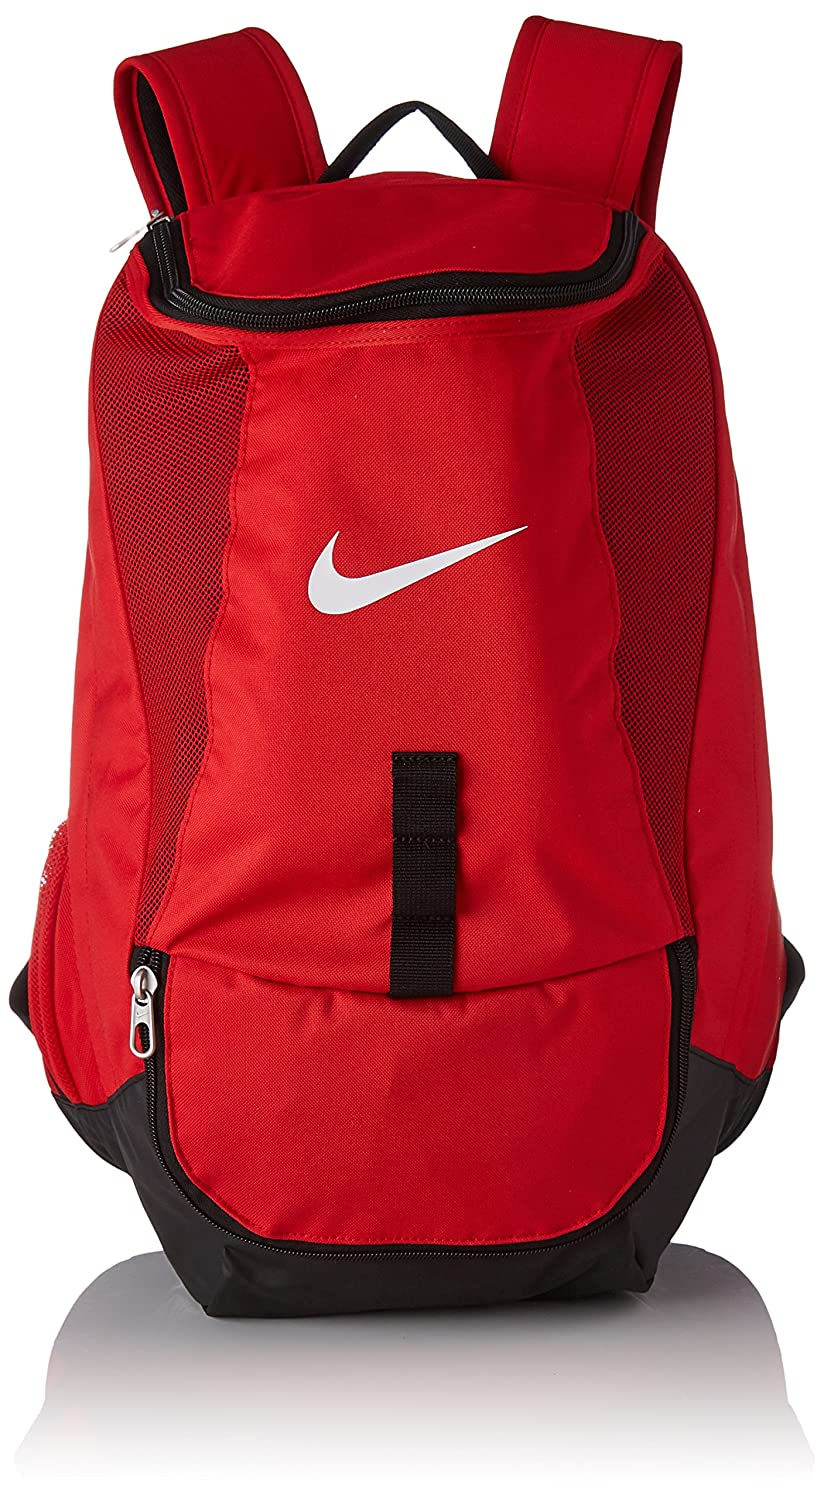 100% authentic reasonable price entire collection Nike Backpack Club Team Swoosh